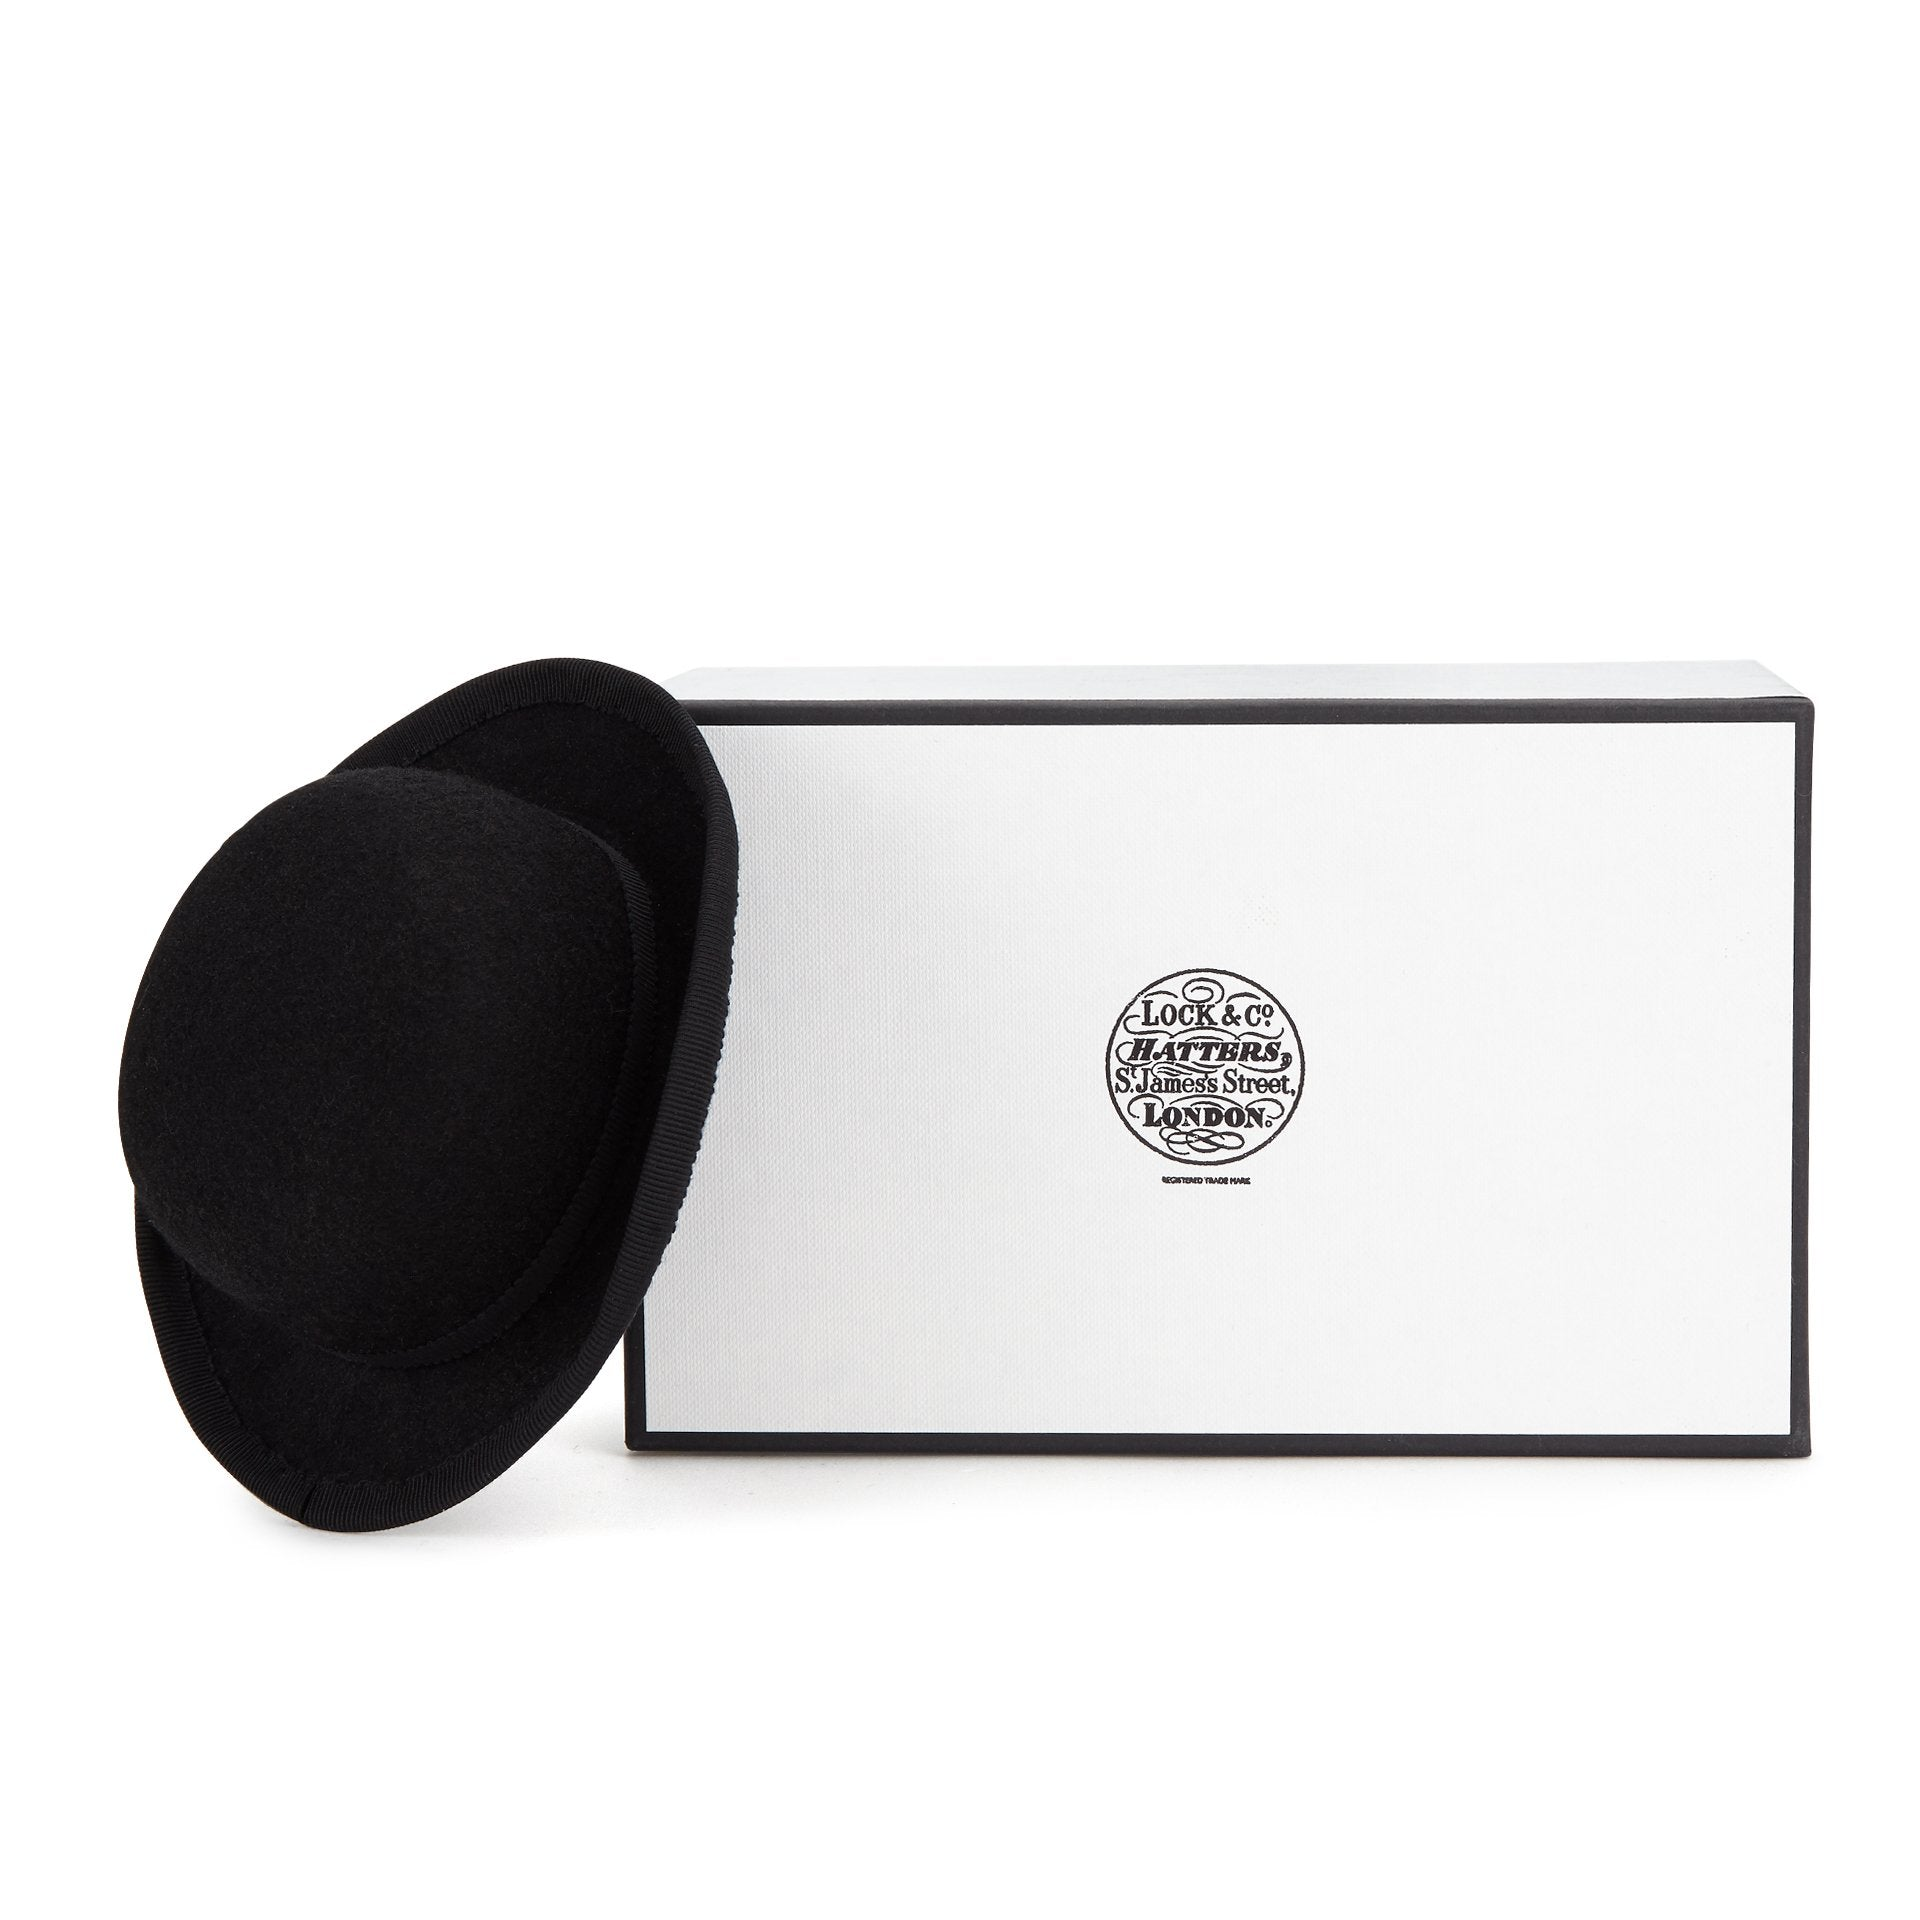 Miniature bowler hat - Hat Accessories - Lock & Co. Hatters London UK